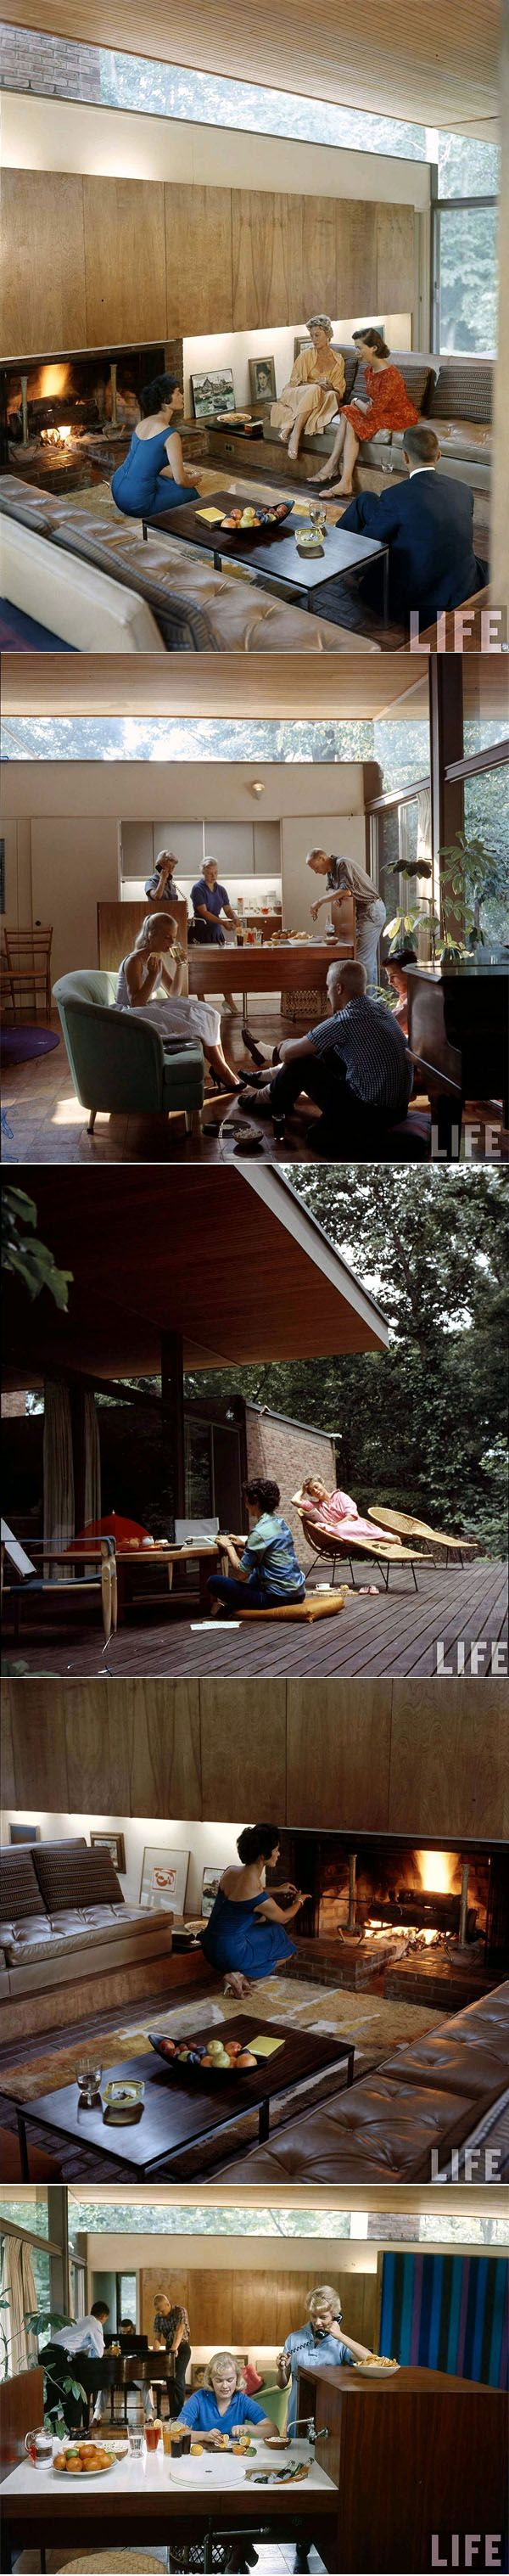 1623 best midcentury modern images on pinterest architecture